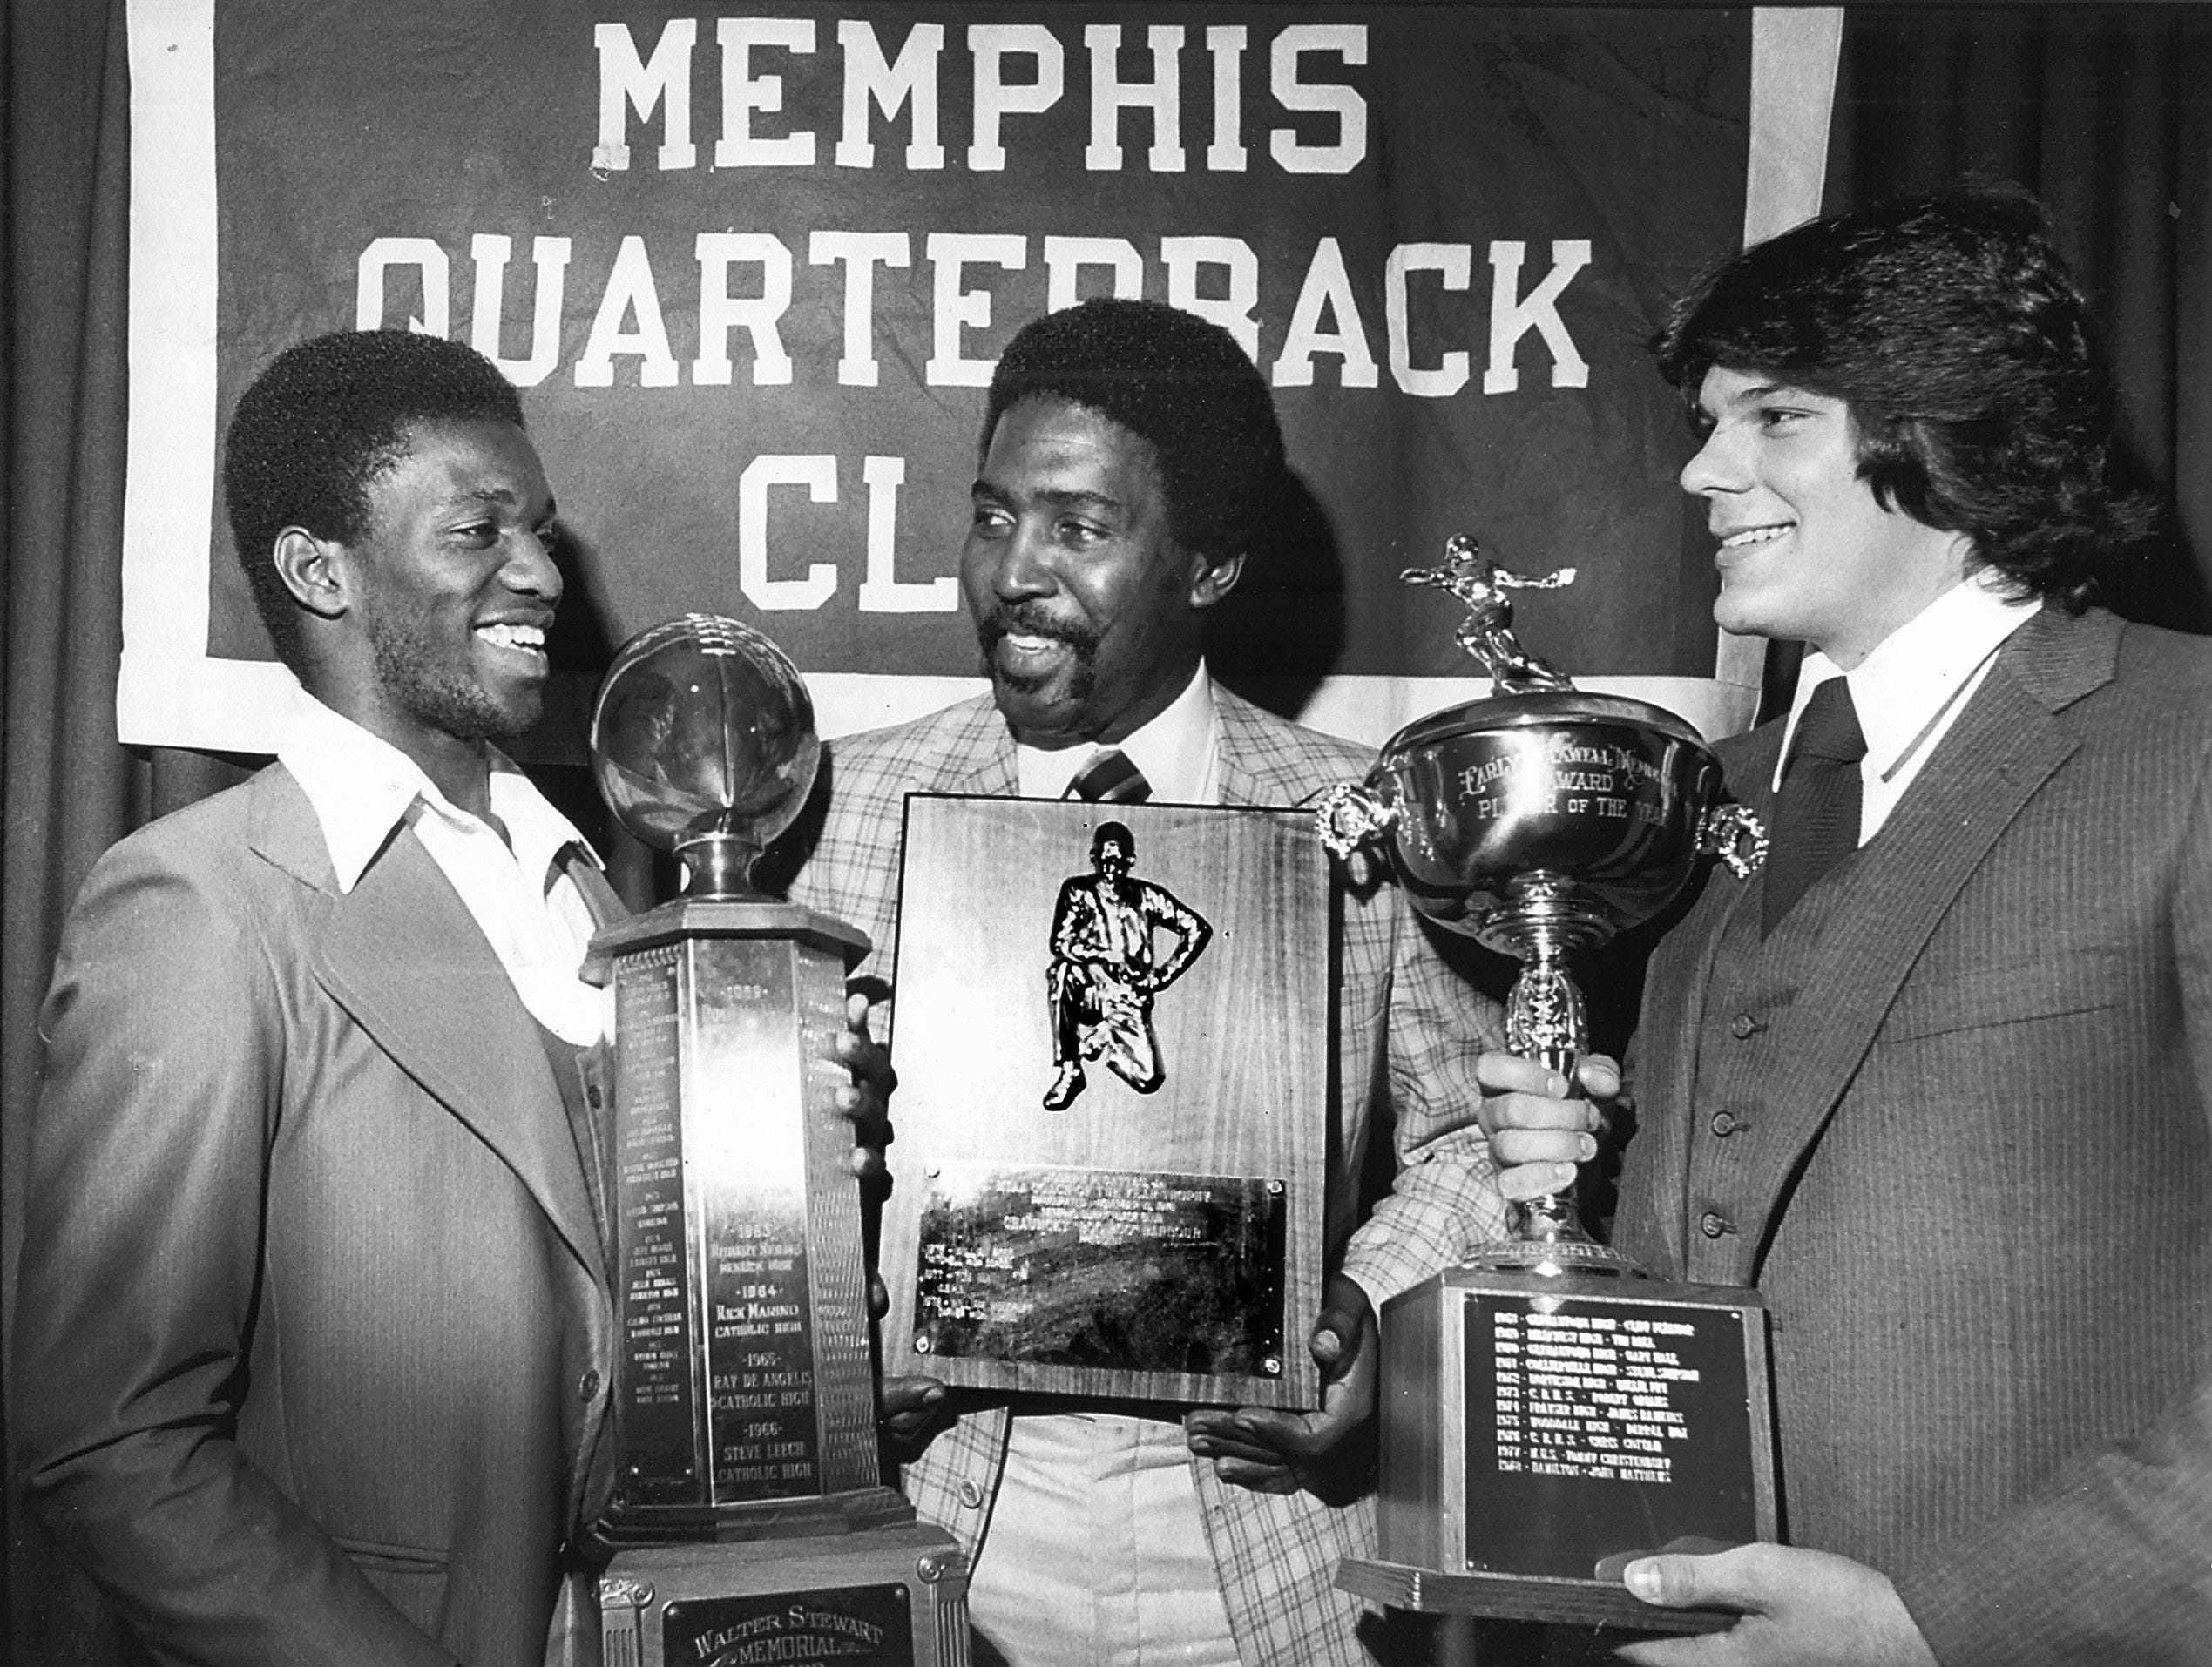 For their achievements on the football field in 1979, the Memphis Quarterback Club honored East quarterback Derrick Crawford (Left), East head coach James Fox (Center) and Craigmont lineman Mike Ihrie at a noon luncheon on 19 Nov 1979.  Crawford won the Walter Stewart Memorial Award as back-of-the-year.  Fox won the Joseph P. Gattas Jr. award as coach-of-the-year and Ihrie received the Early Maxwell Memorial Award as the city's top lineman.  White Station won the Sportsmanship award for the second consecutive year.